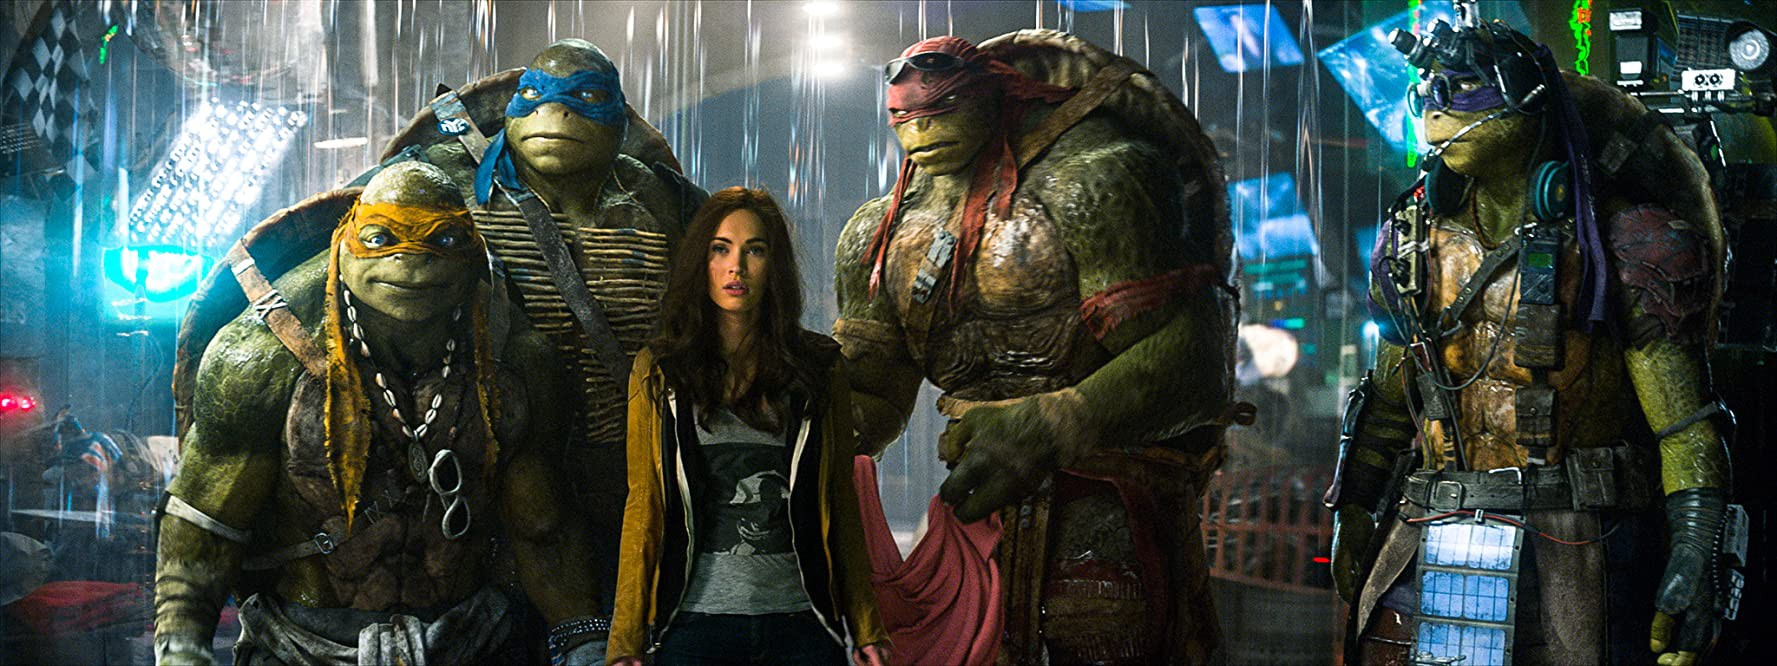 watch ninja turtles movie online free